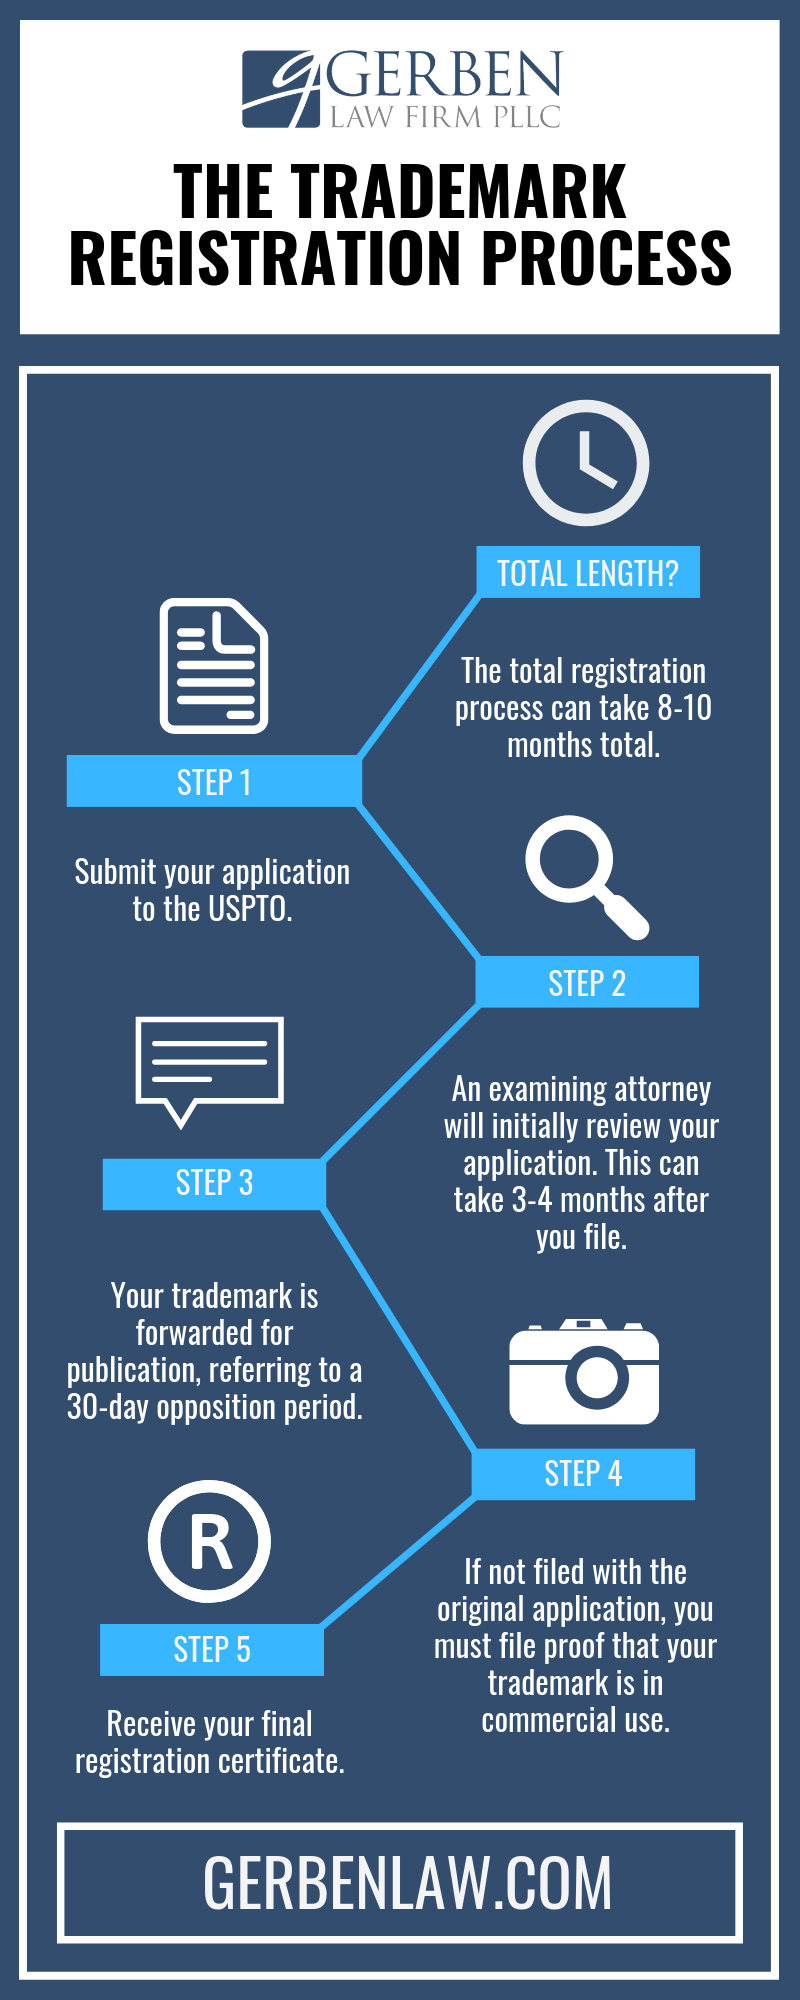 Image of the trademark registration process - five steps